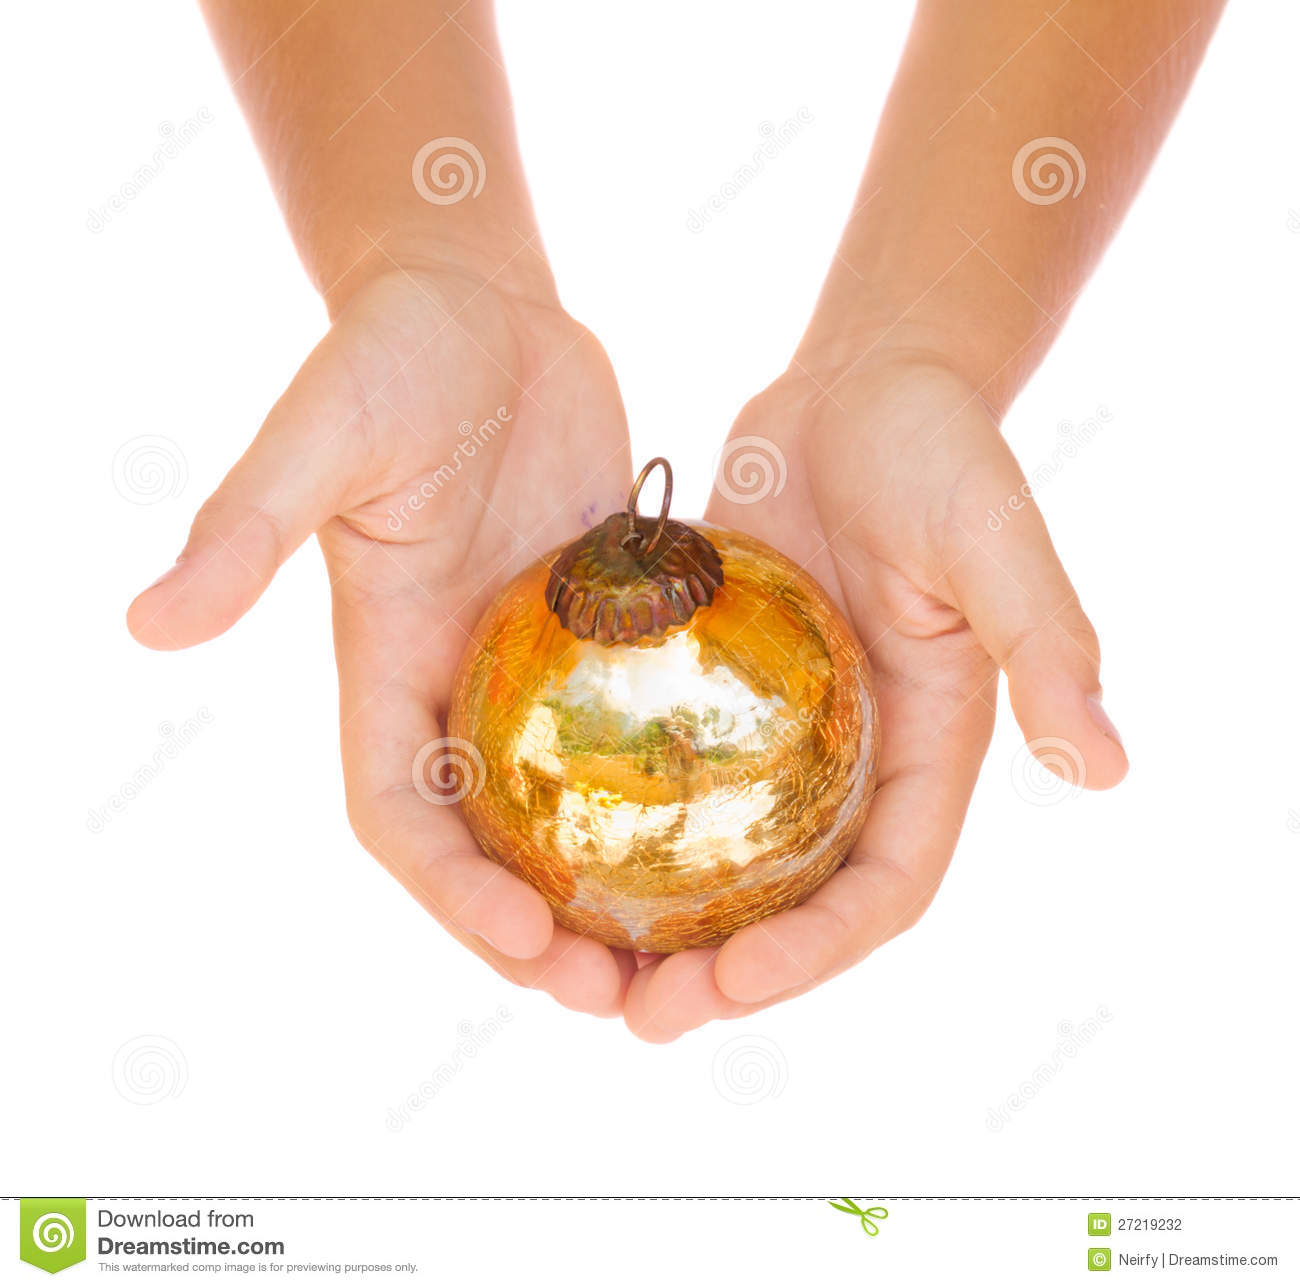 Hands Holding Christmas Ball Stock Photography - Image: 27219232: dreamstime.com/stock-photography-hands-holding-christmas-ball...